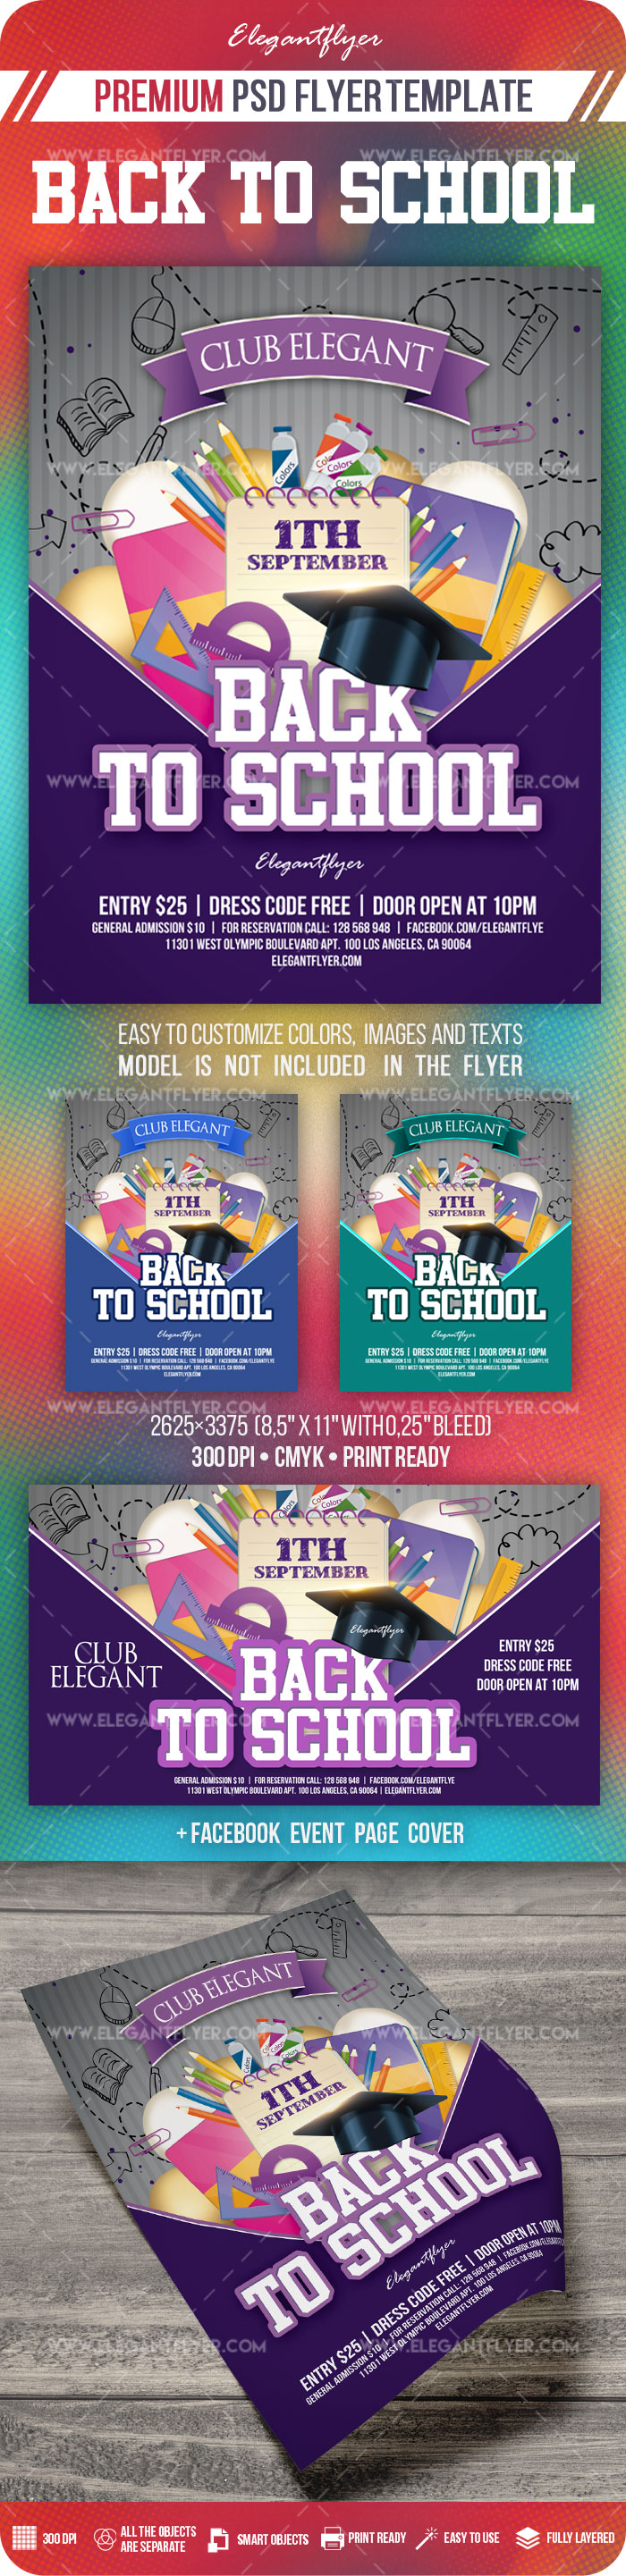 Back To School Flyer Psd Template By Elegantflyer